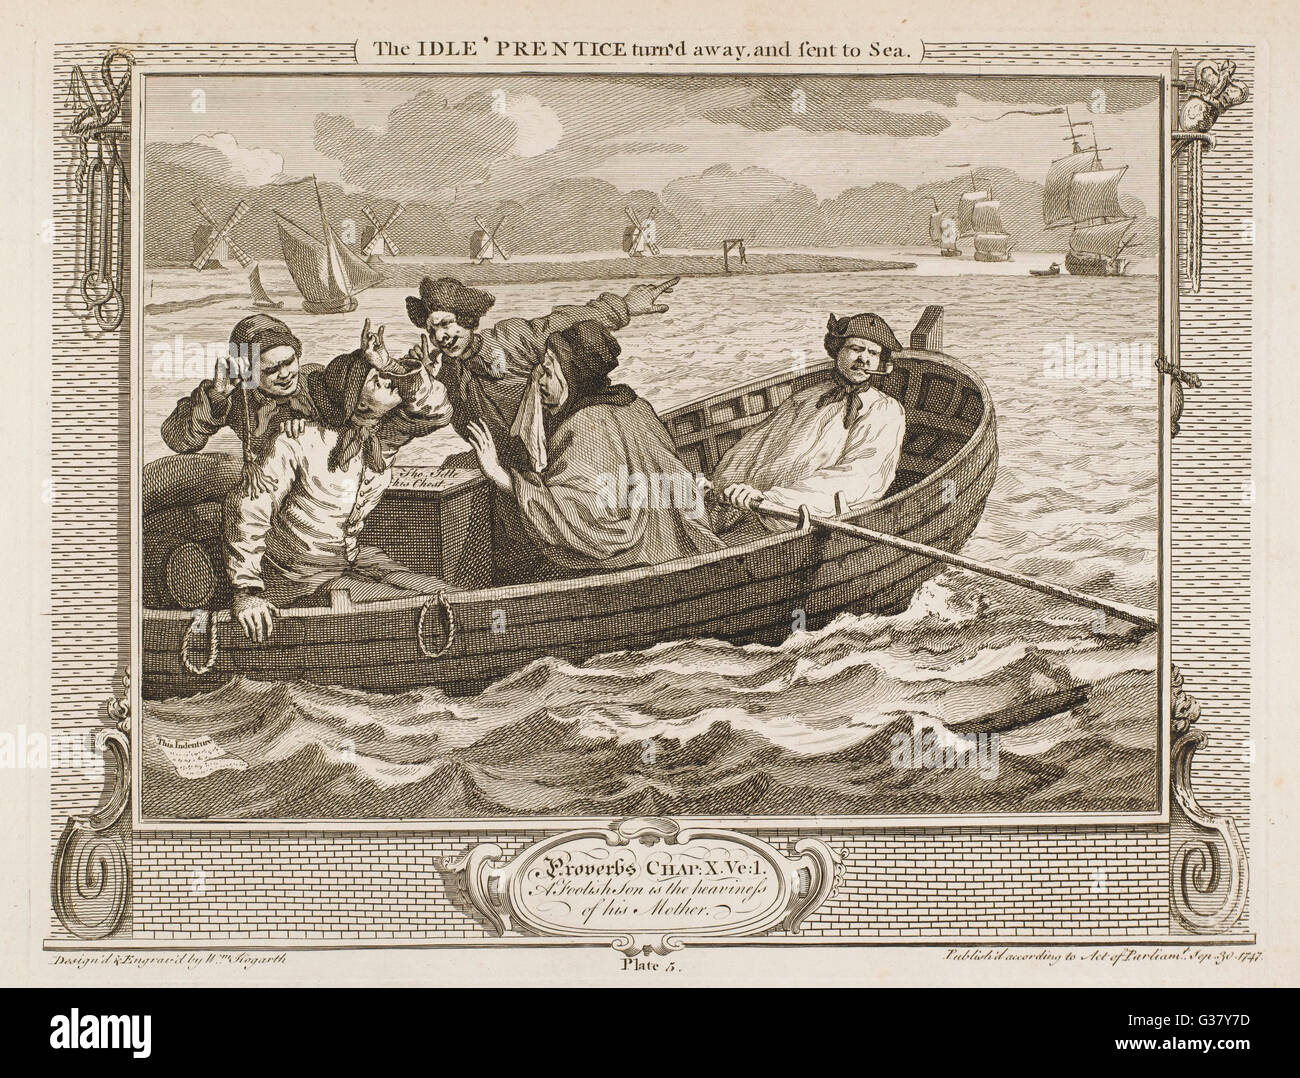 The idle apprentice is turned away and sent to sea (final destination unknown).       Date: circa 1790 - Stock Image